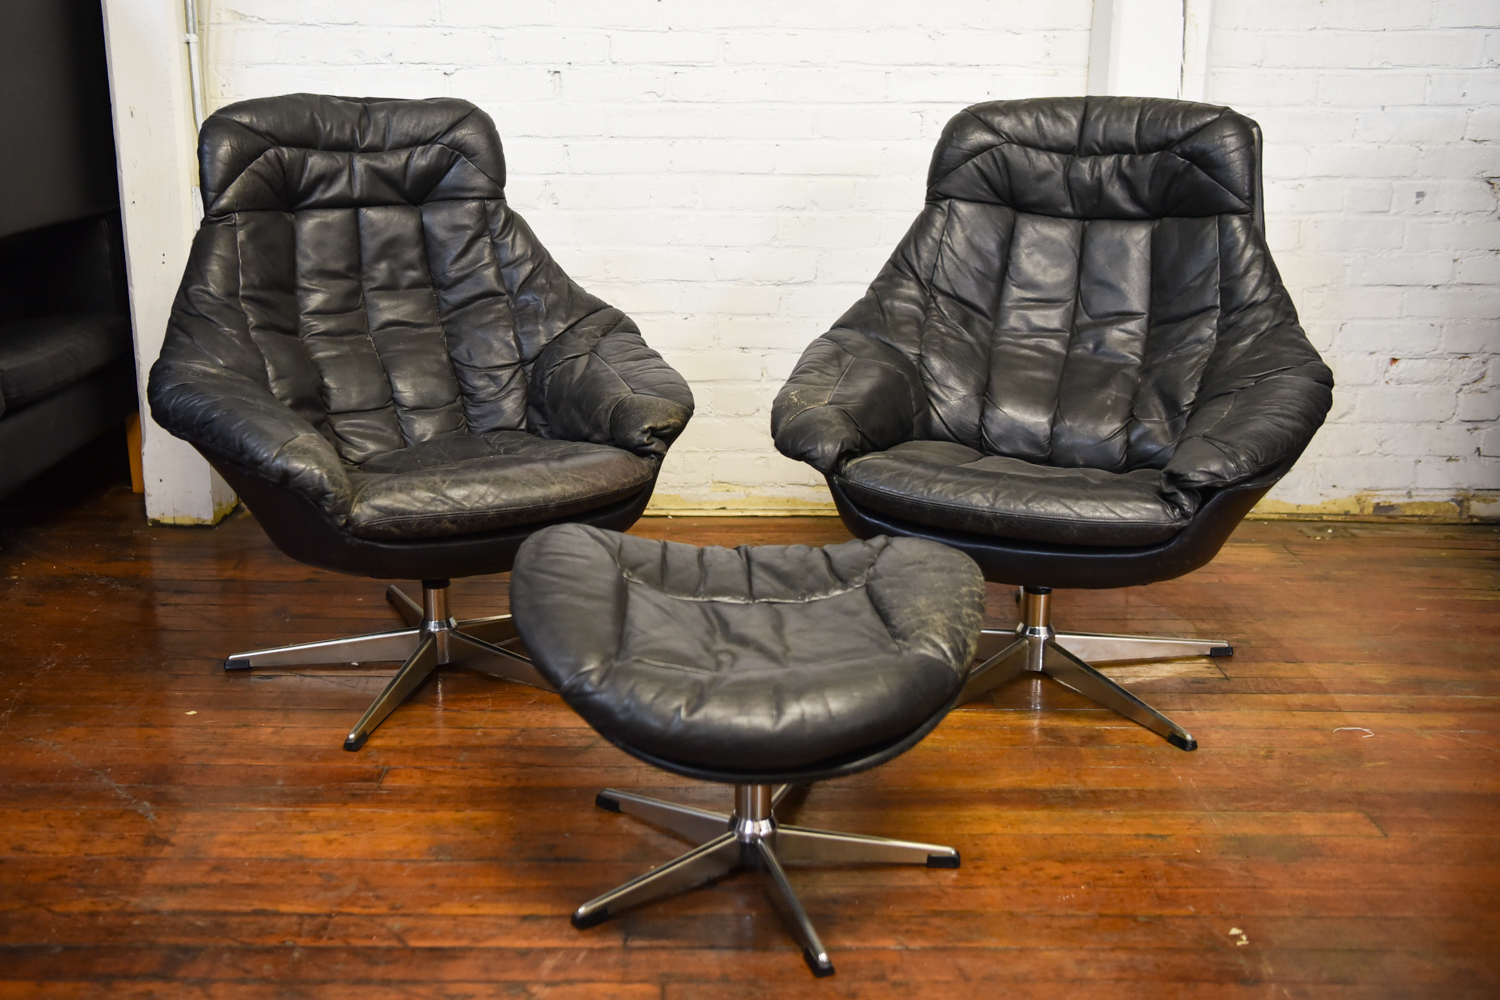 Black Leather Lounge Chair Pair Of Black Leather Lounge Chairs With Ottoman By H W Klein For Bramin Mobler